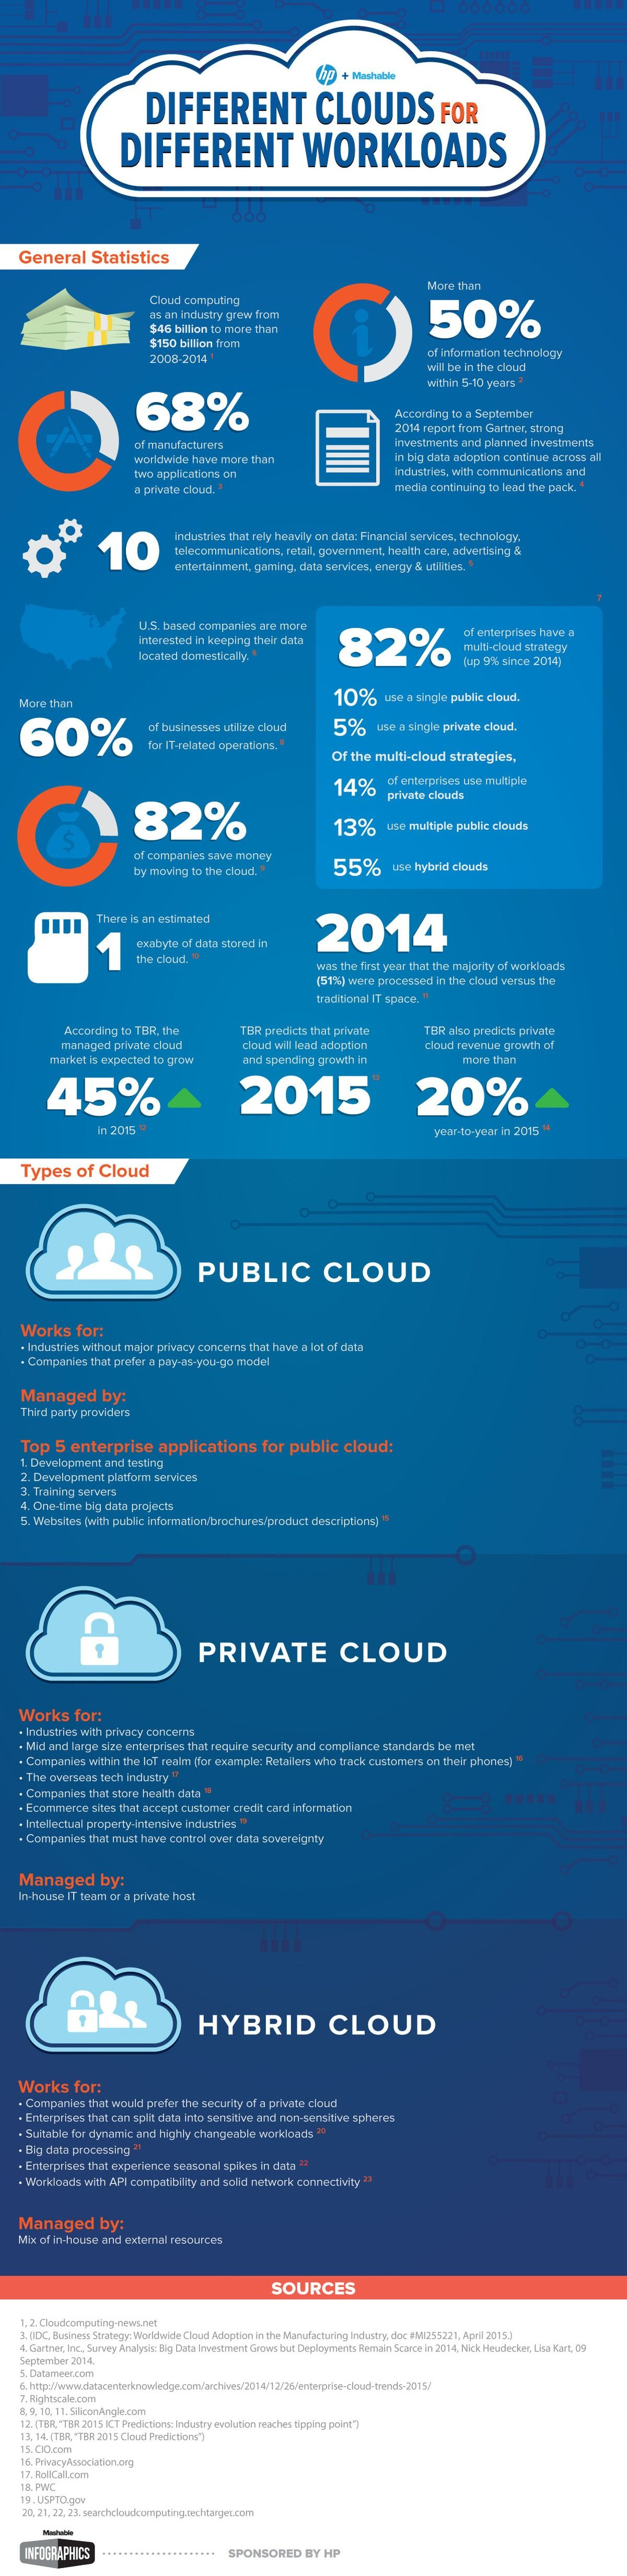 Different Clouds for Different Workloads #infographic #Clouds #Business #Technology